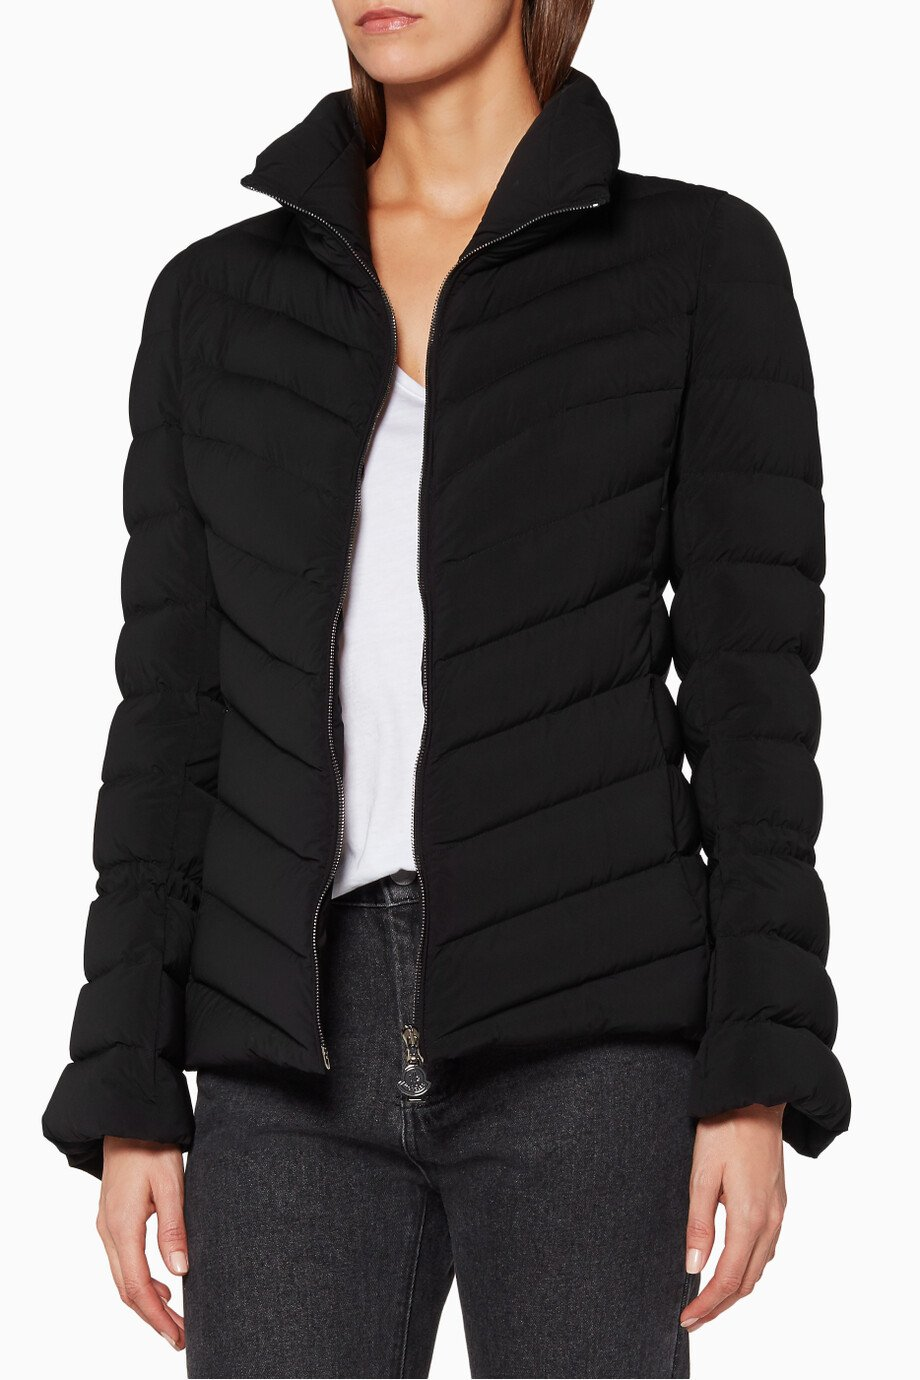 45aedb362 Shop Moncler Black Black Moncler Solanum Quilted Puffer Jacket for ...